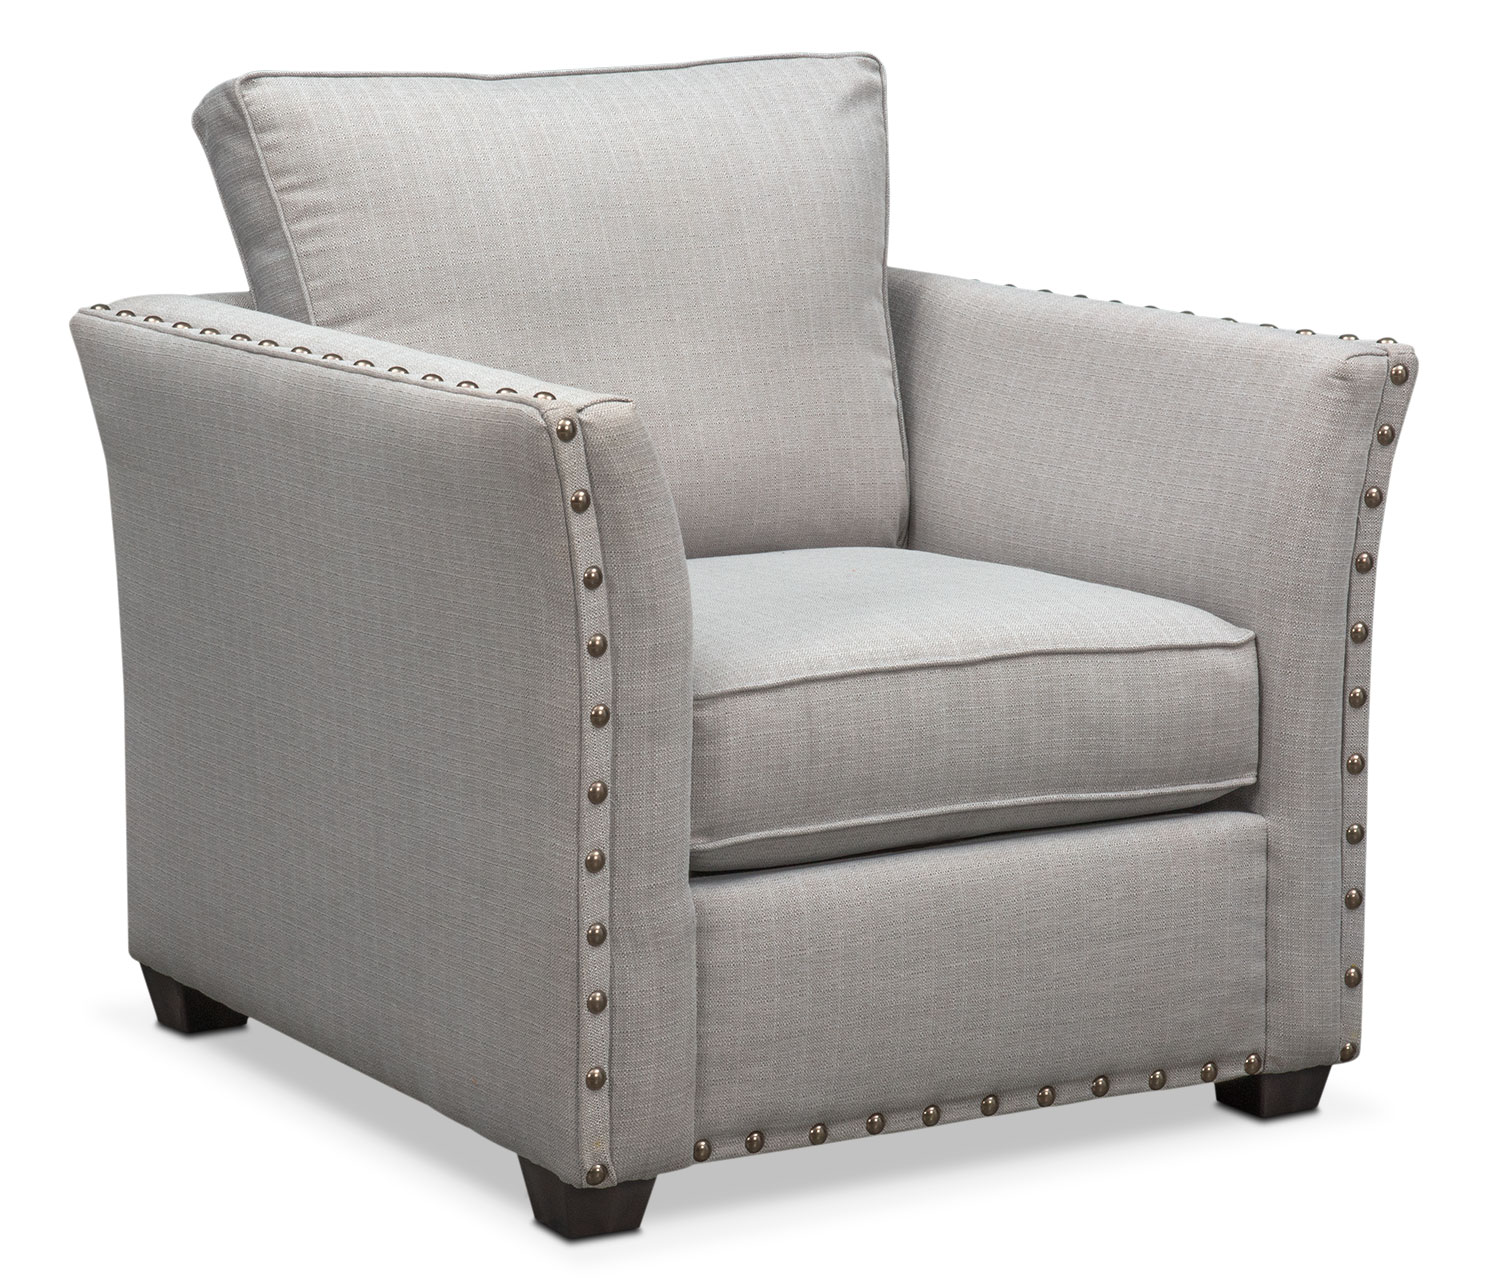 Mckenna Chair - Pewter